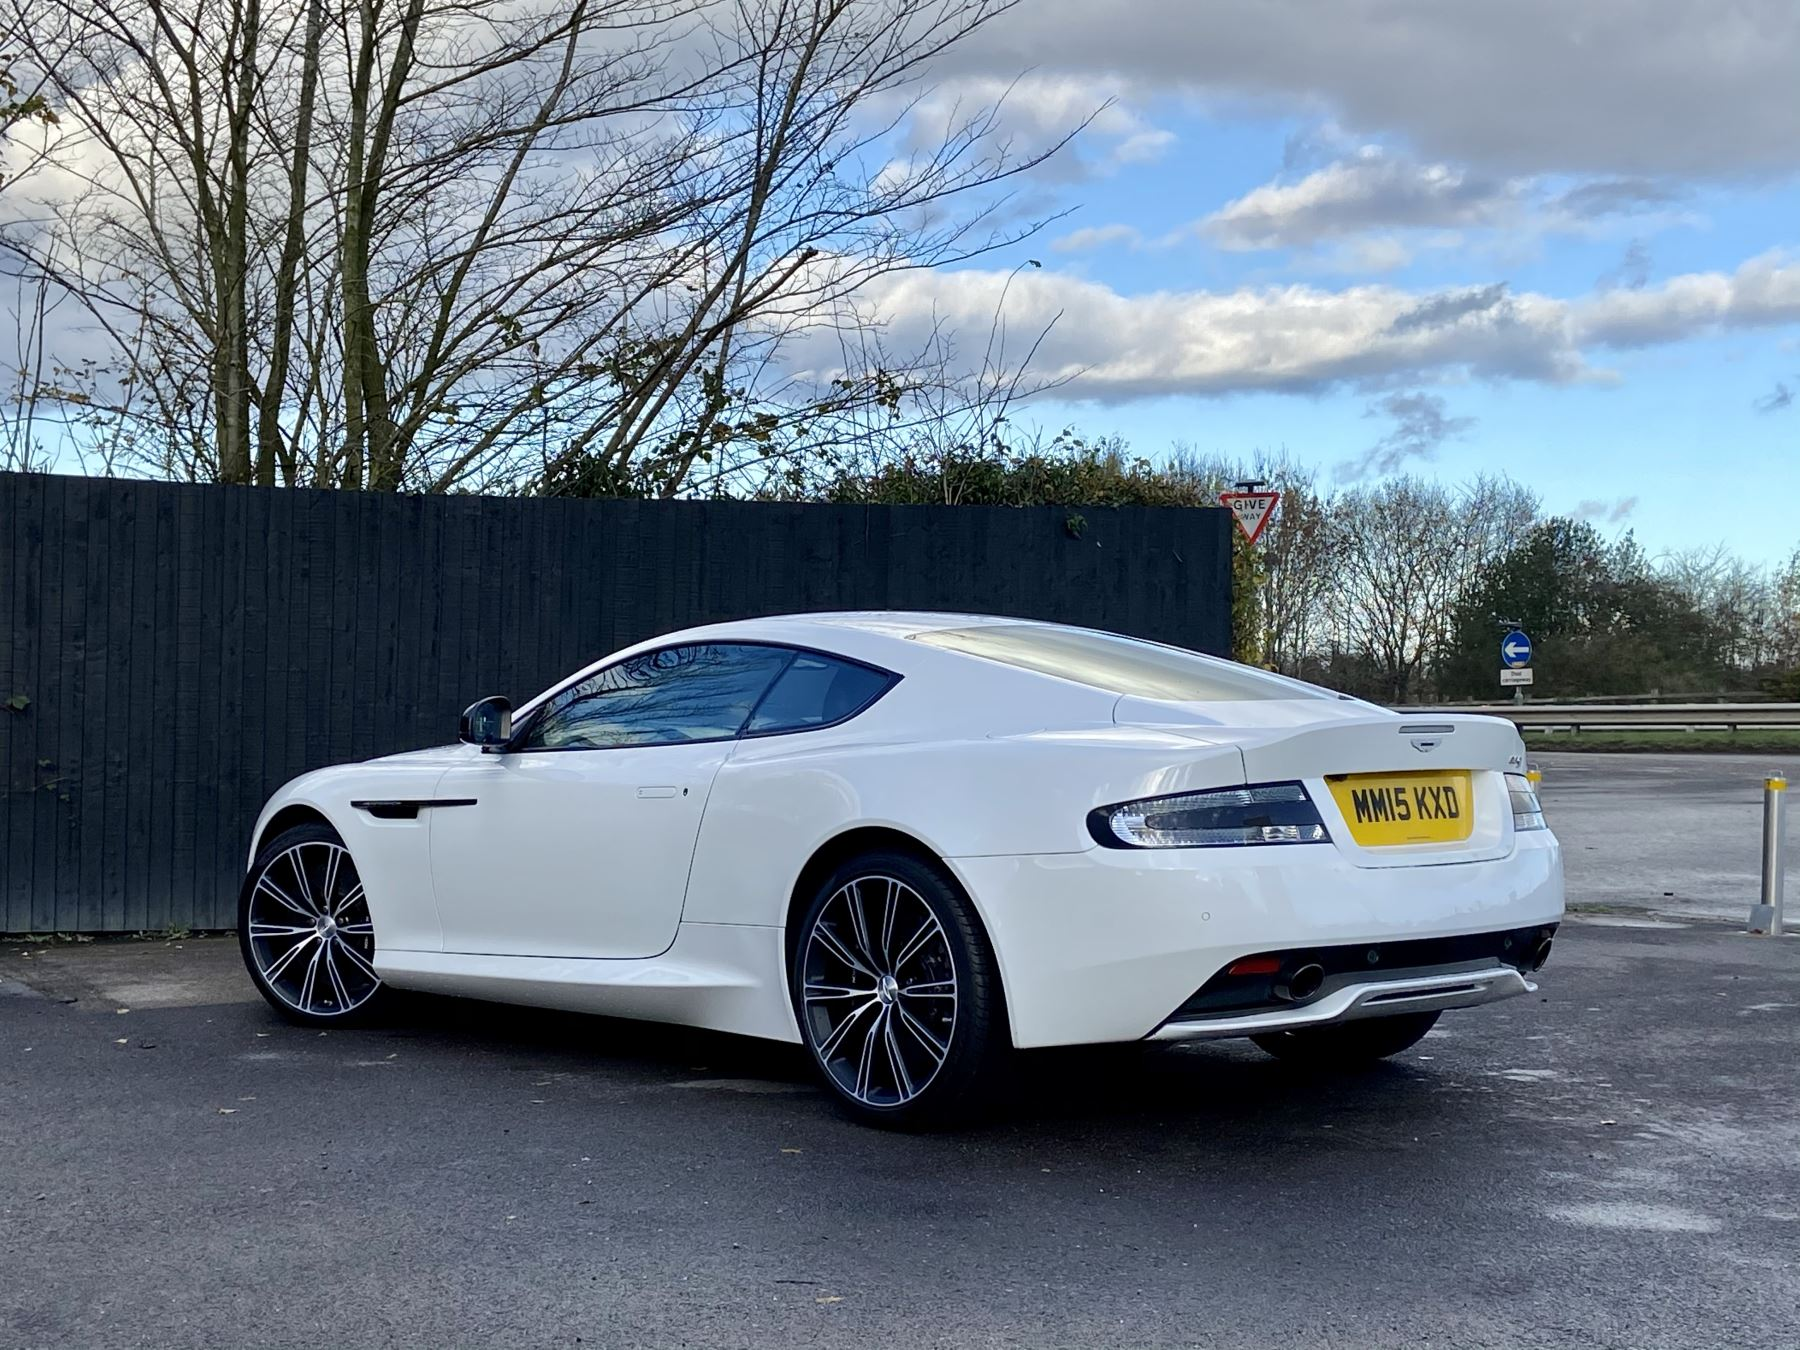 Aston Martin DB9 Carbon Edition V12 2dr Touchtronic image 5